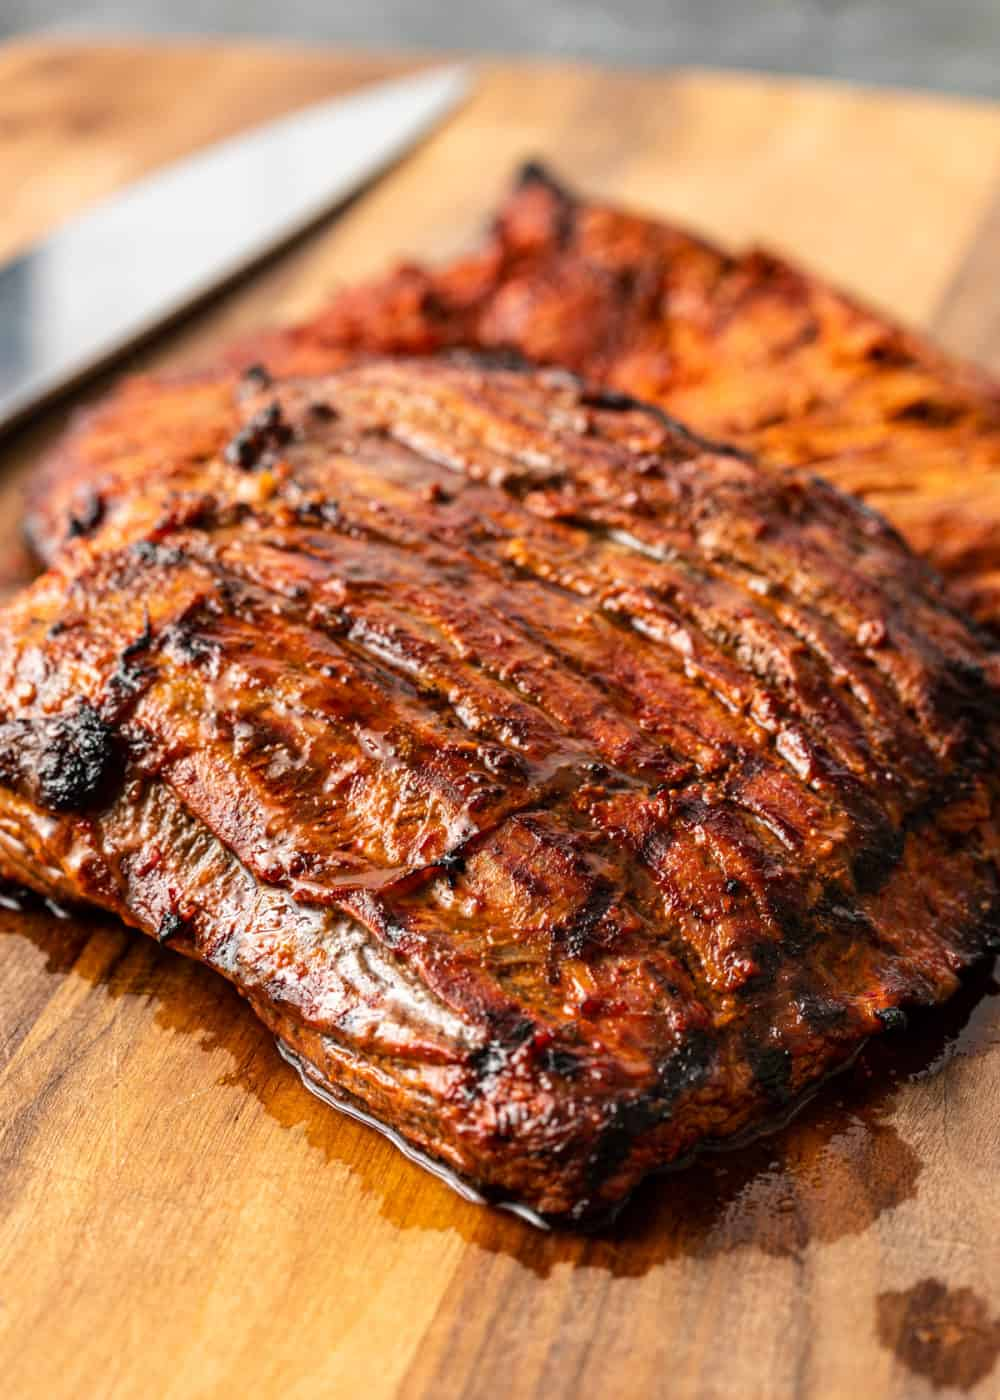 closeup: grilled Mexican steak resting on wooden cutting board